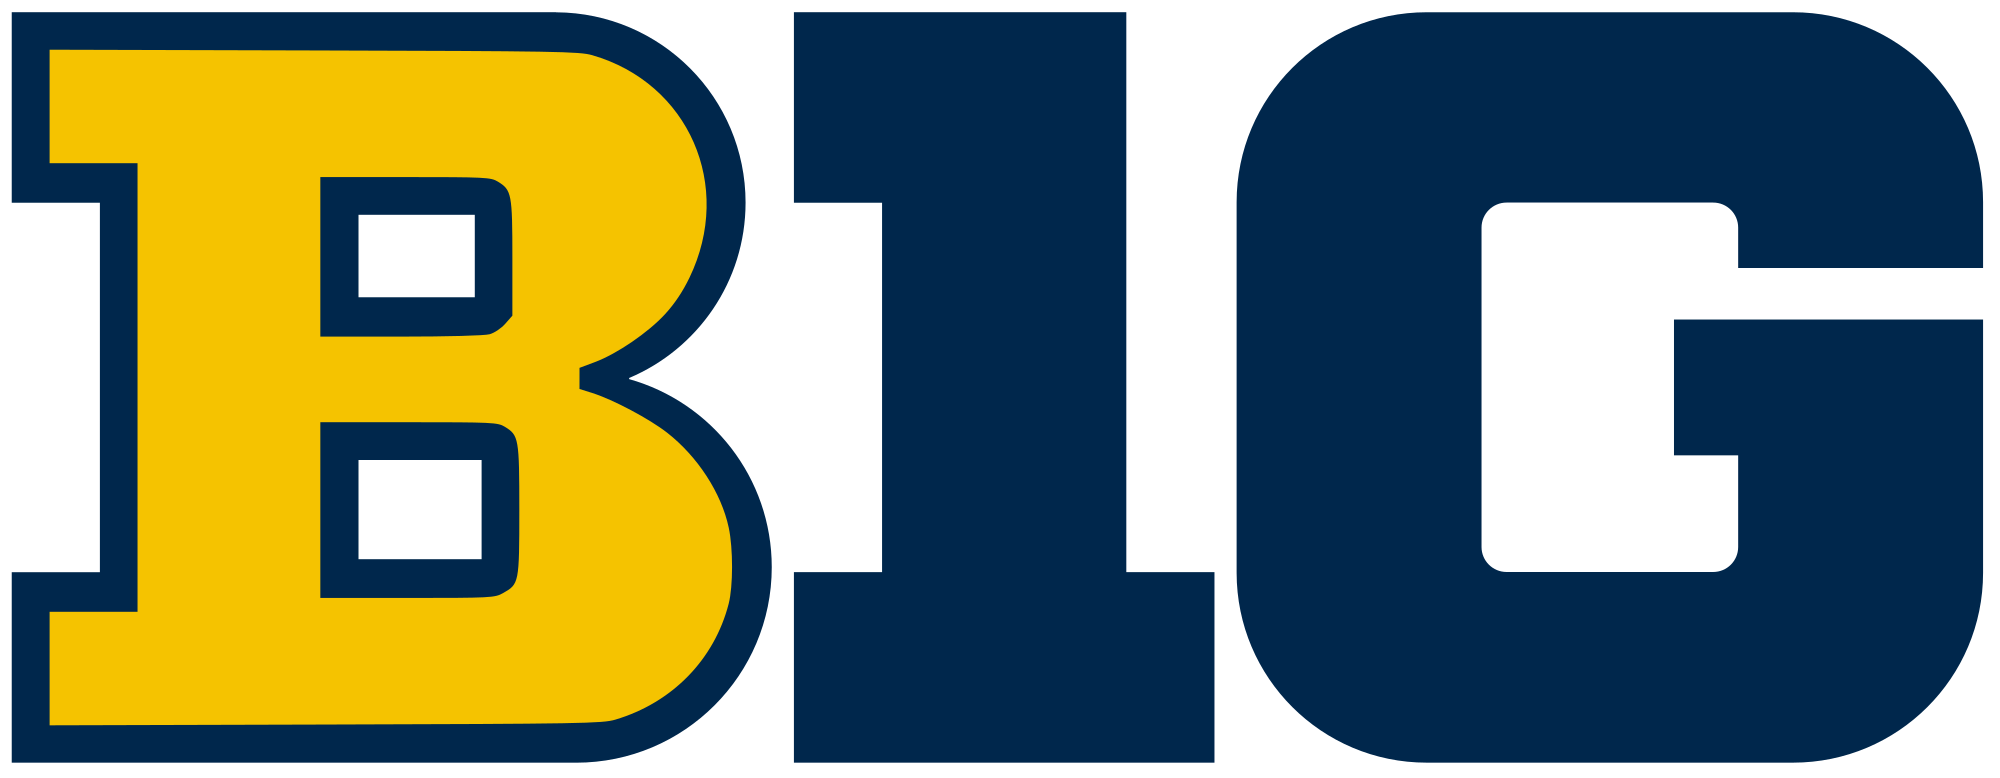 Clipart rutgers football clip library stock Big Ten Power Poll: Where does Penn State go from here? | PennLive.com clip library stock